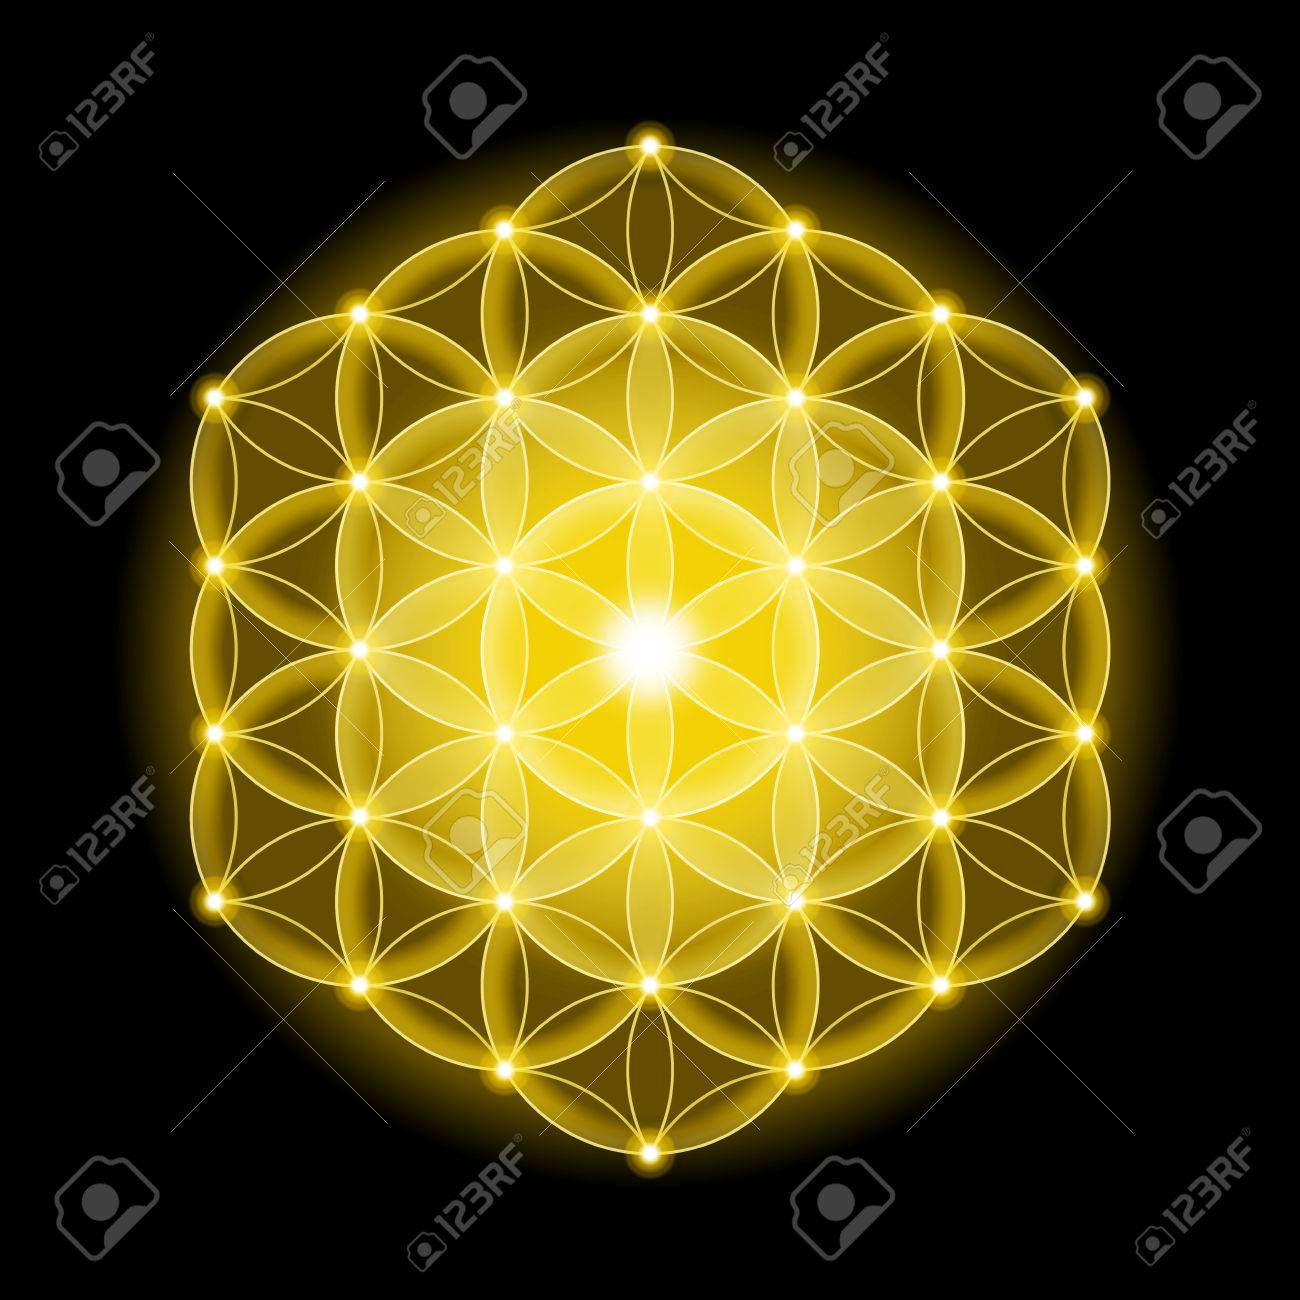 Golden Cosmic Flower Of Life With Stars On Black Background,.. Stock Photo, Picture And Royalty Free Image. Image 48697729.